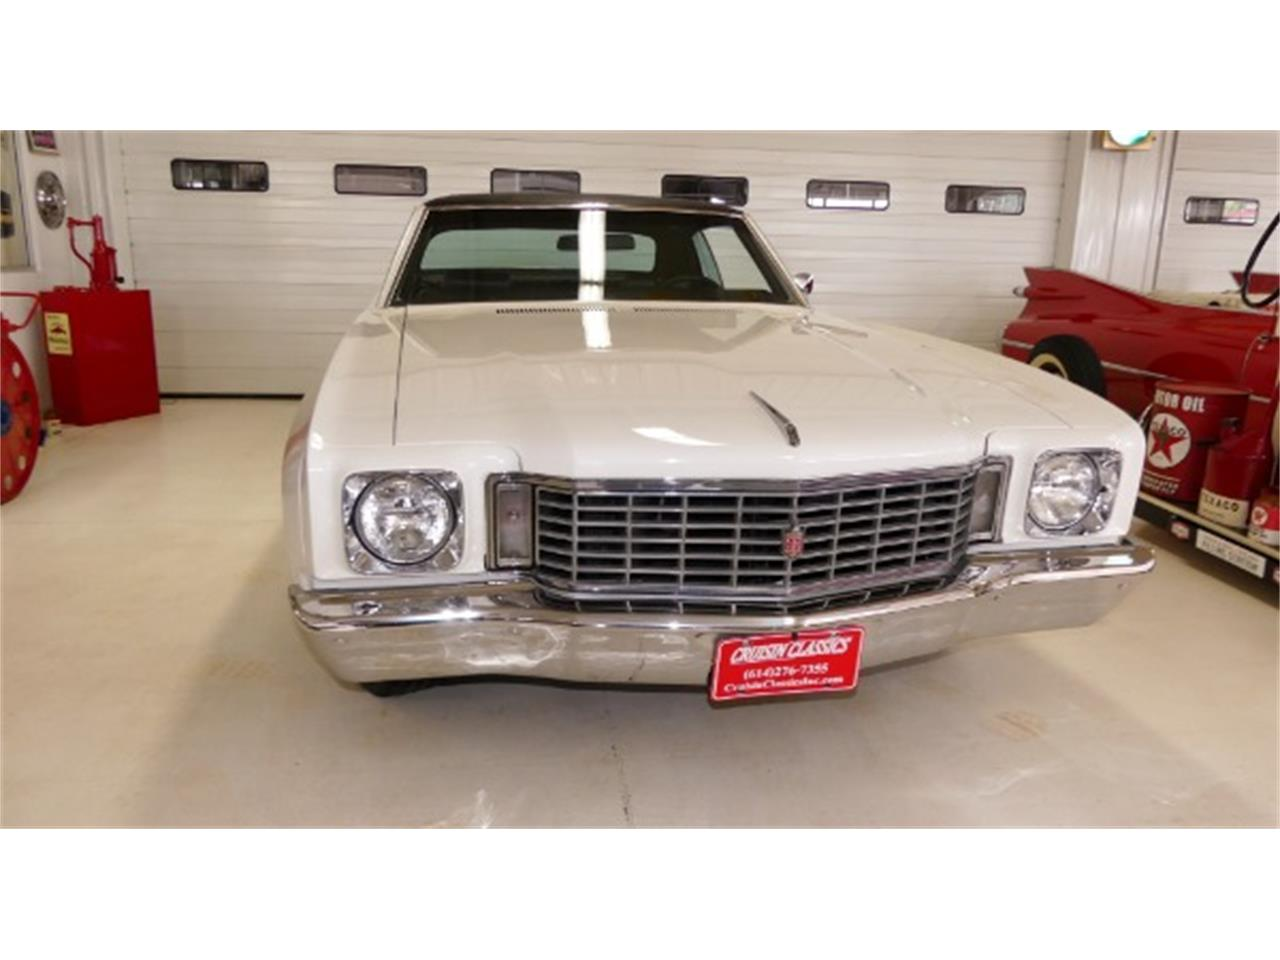 Large Picture of '72 Chevrolet Monte Carlo located in Ohio - $18,995.00 Offered by Cruisin Classics - OG2T